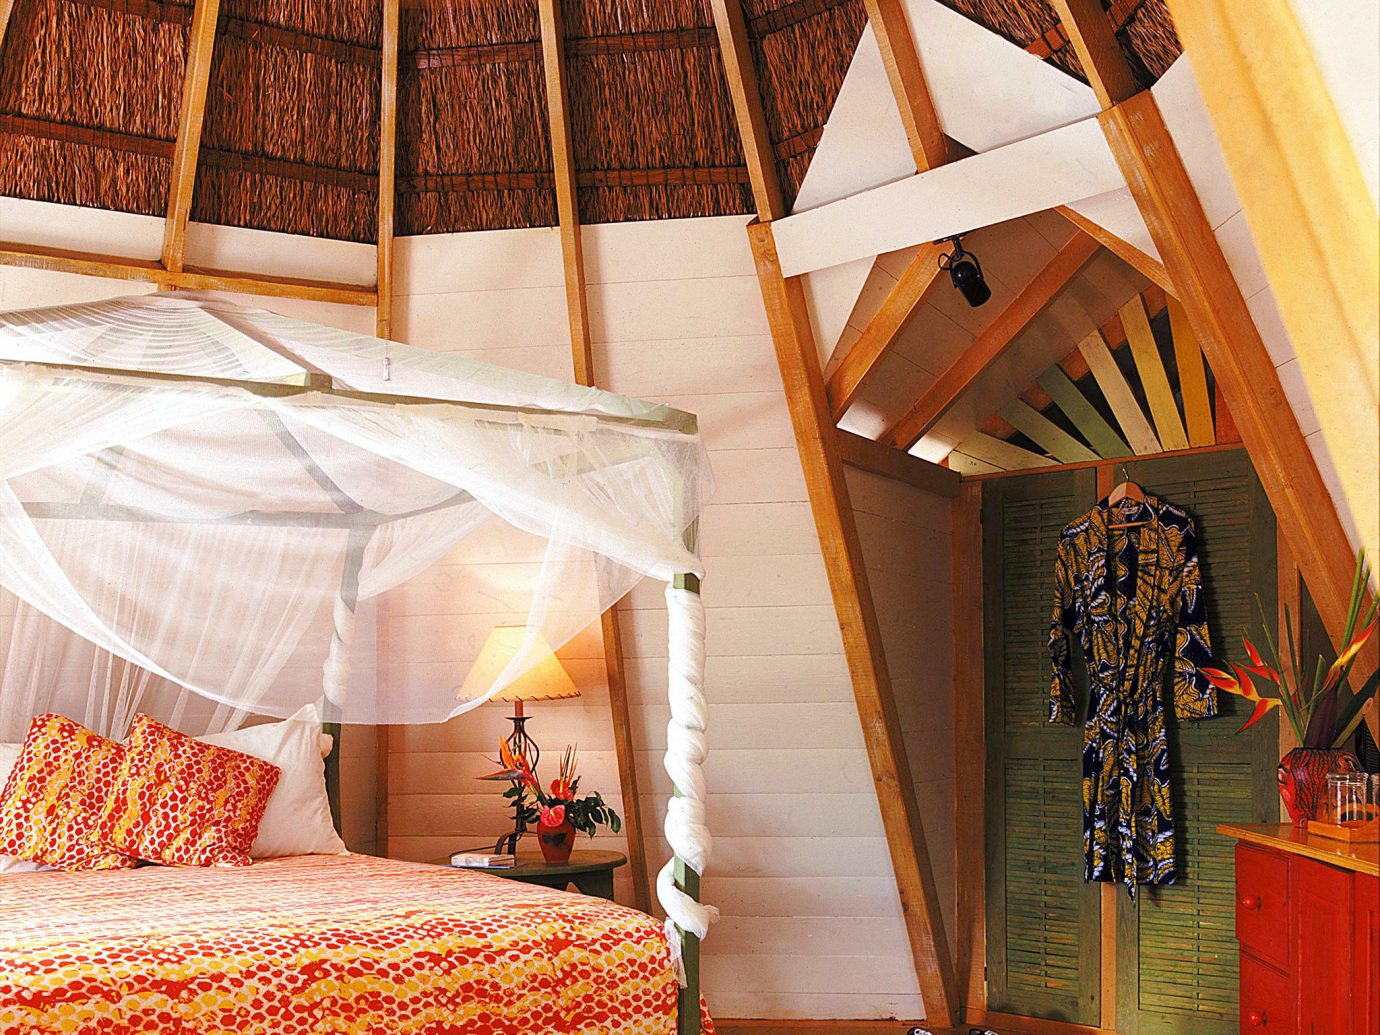 Bedroom At The Caves Hotel Luxury Beach Resort - All Inclusive